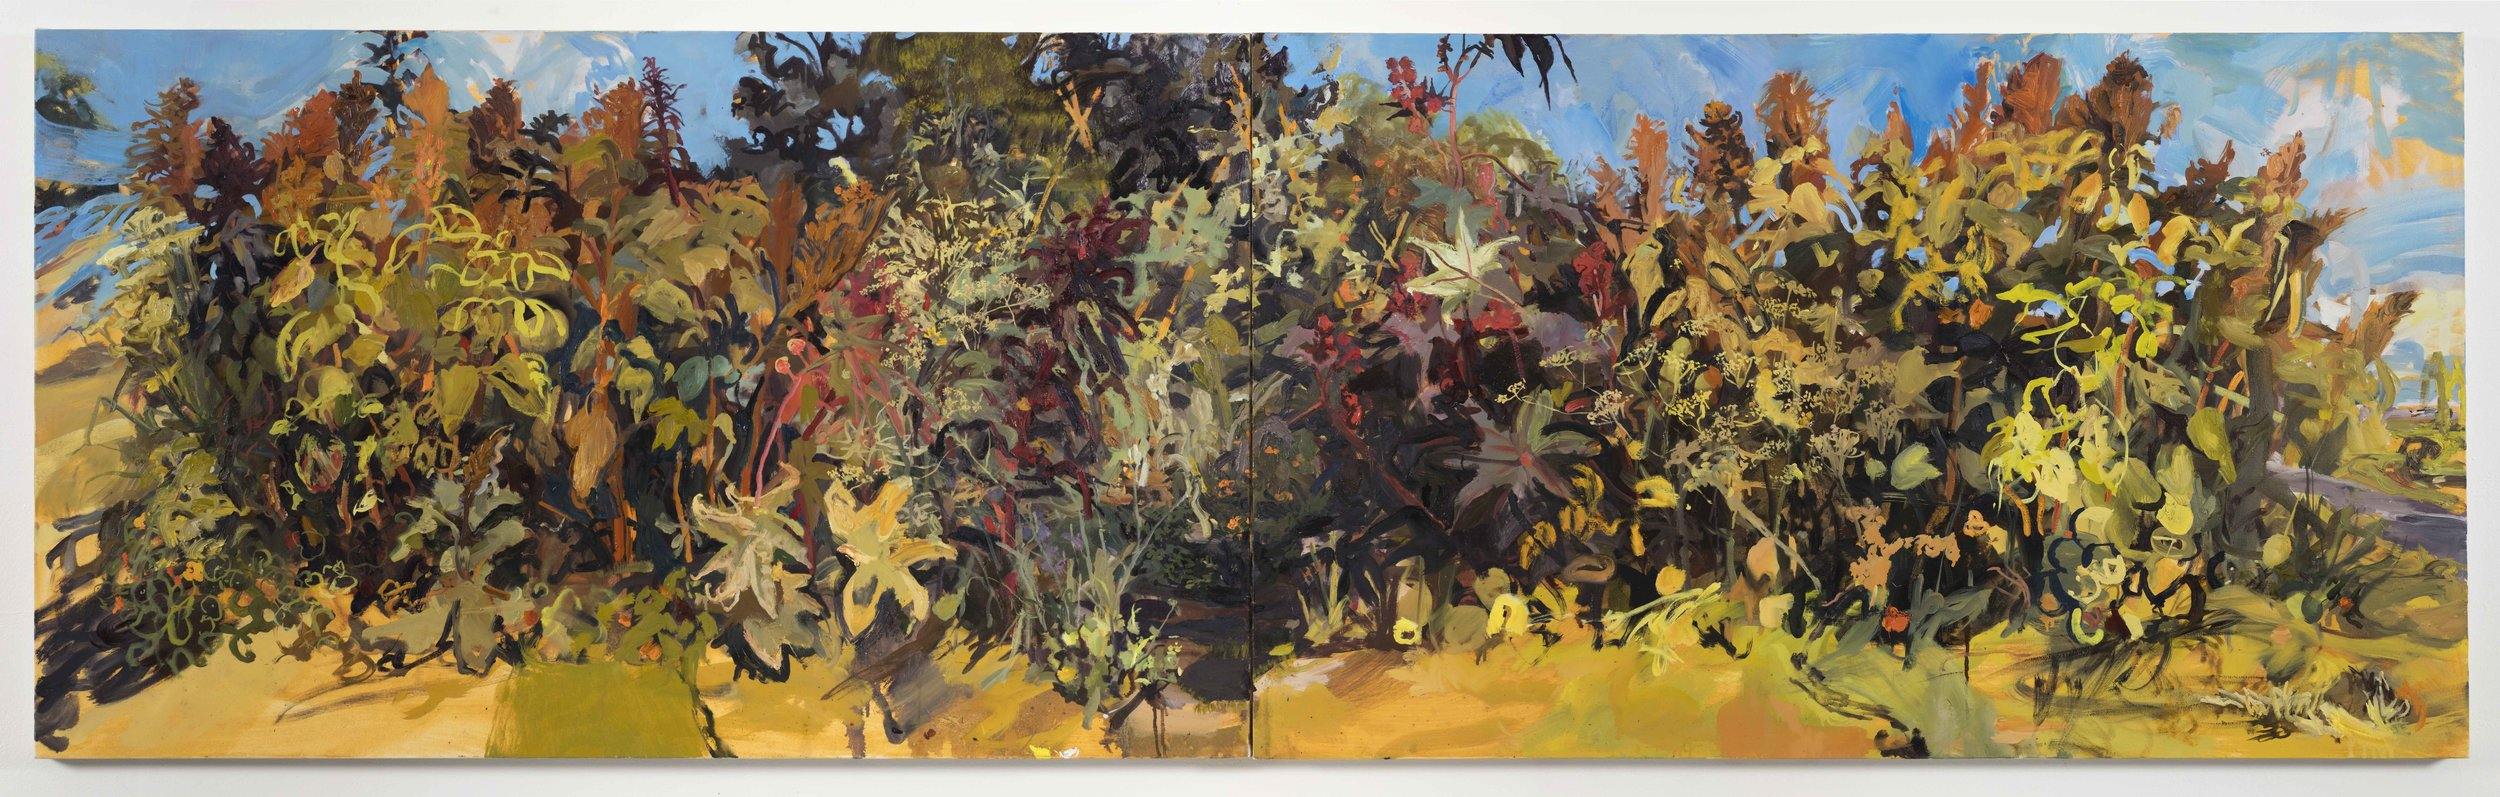 Millennium Park   36in x 120in, oil on canvas, 2017